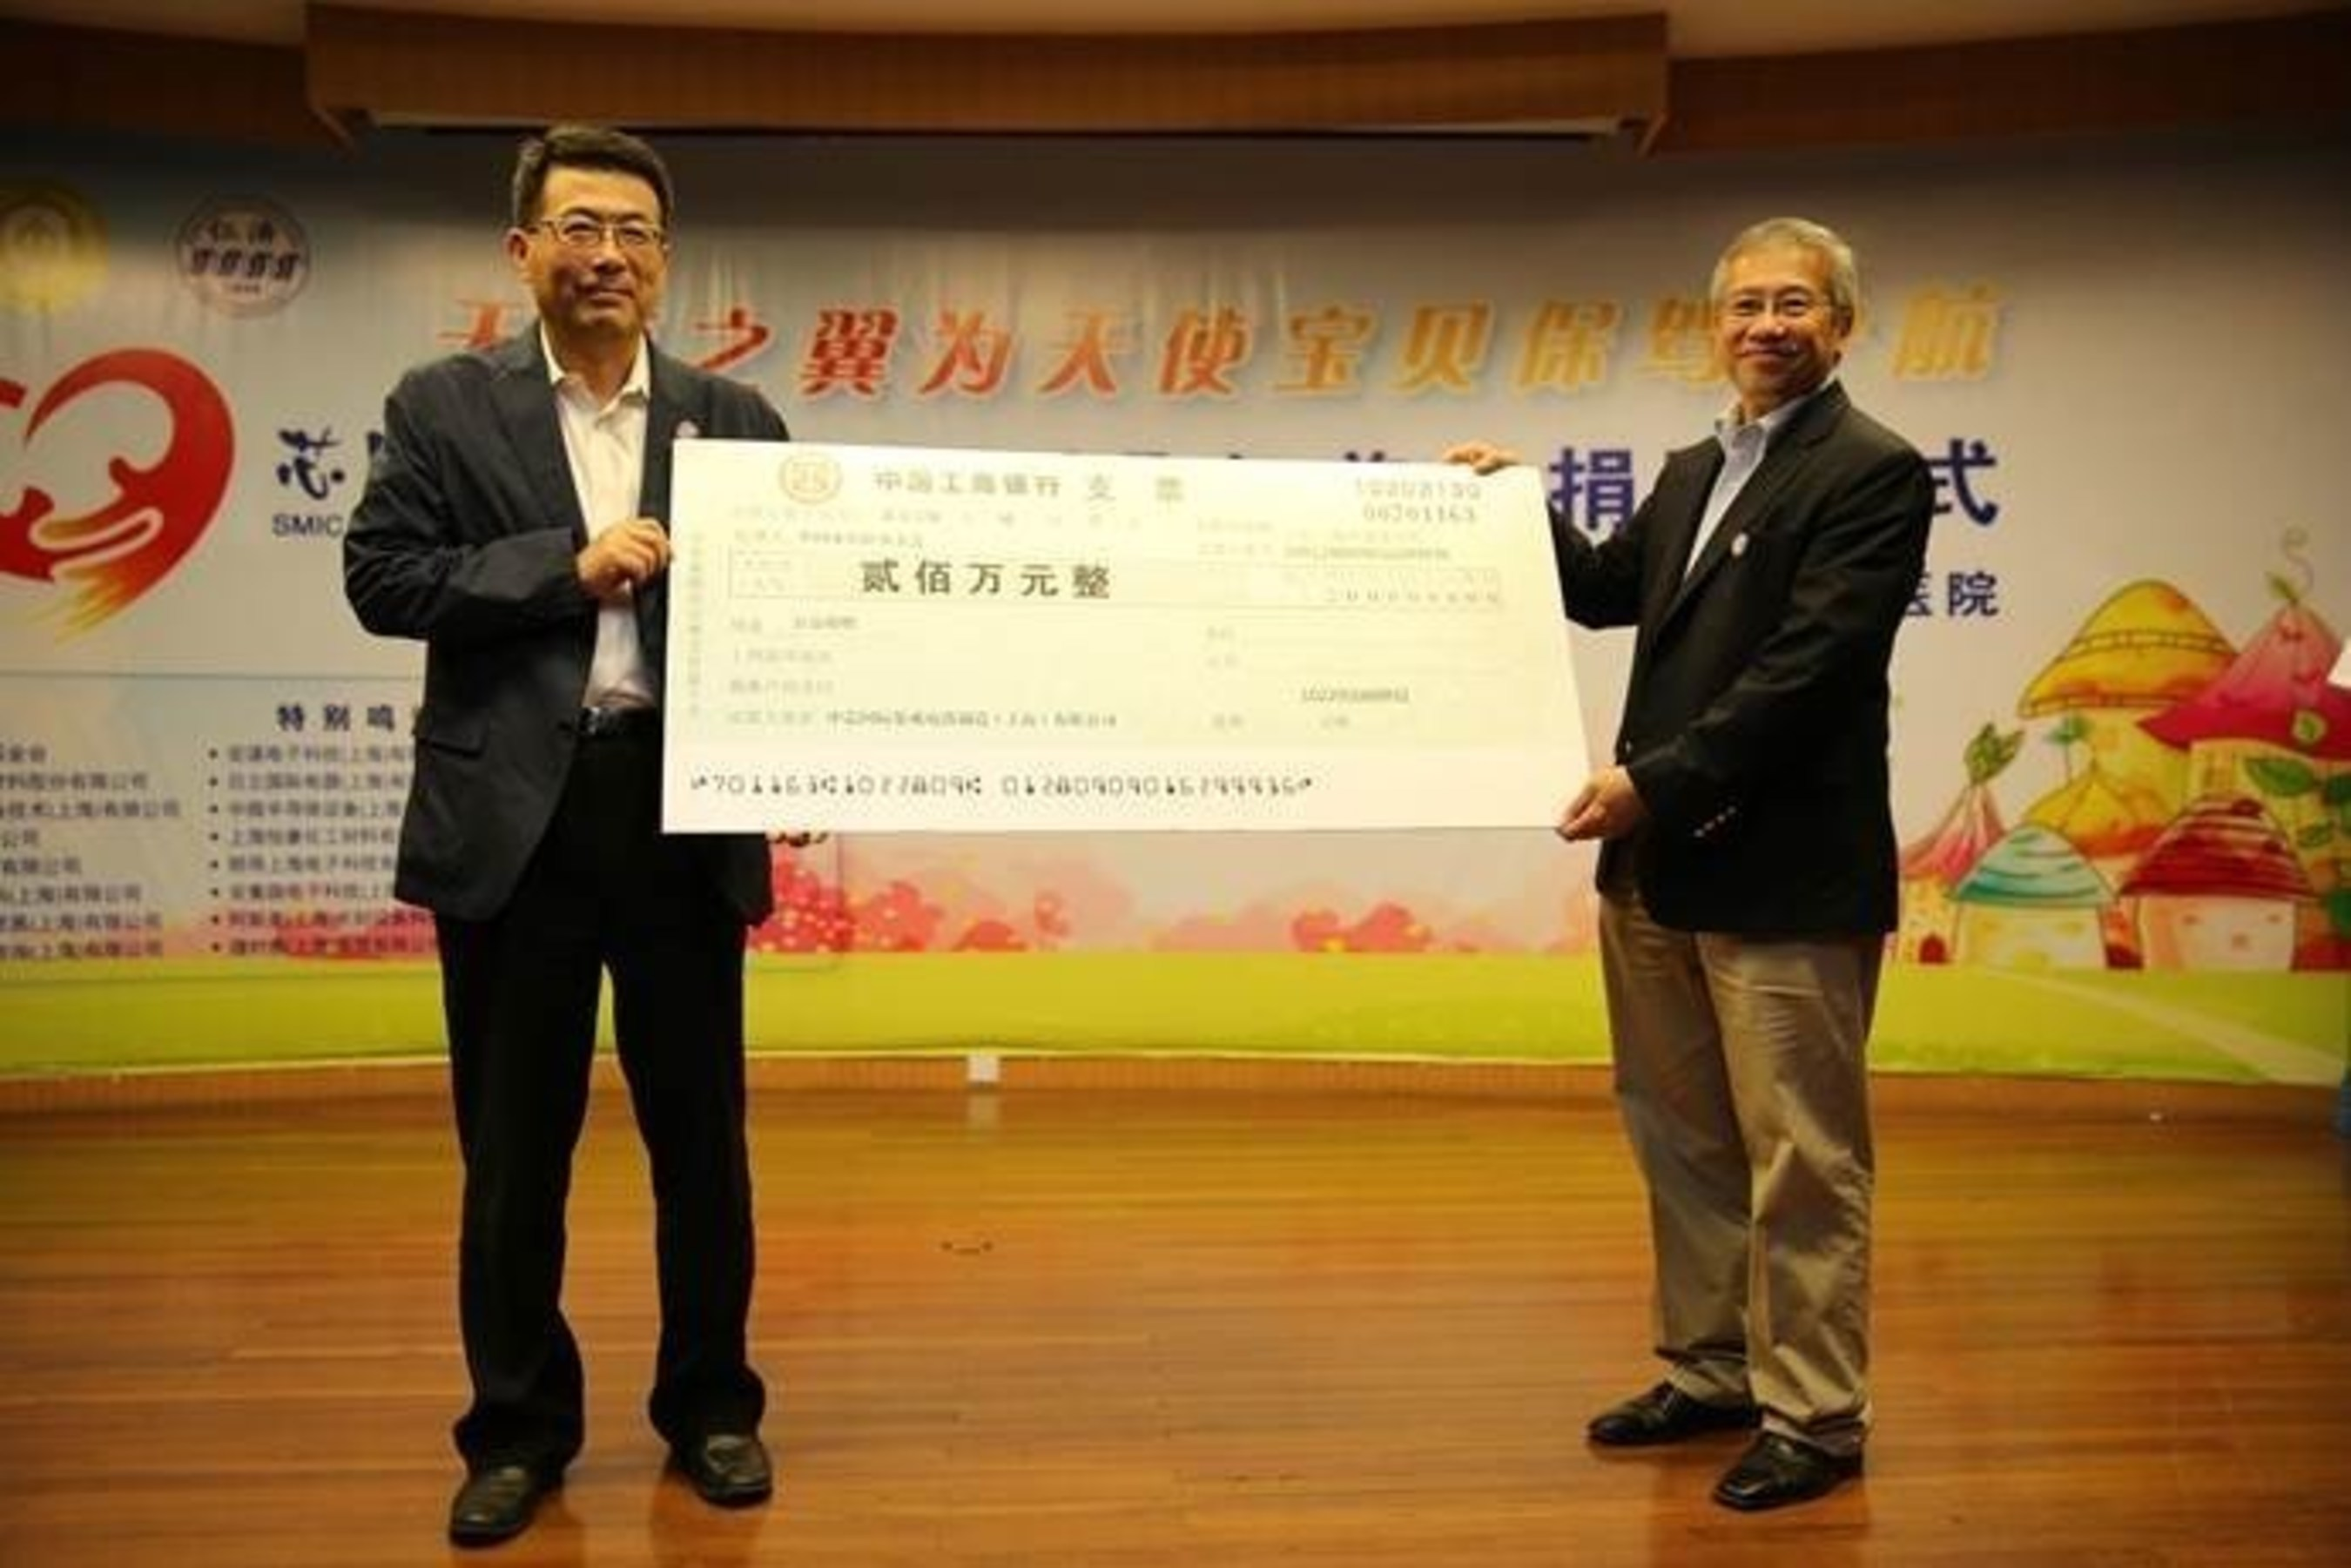 SMIC and Semiconductor Companies Donate over 2.76 million yuan to its Liver Transplant Program for Children